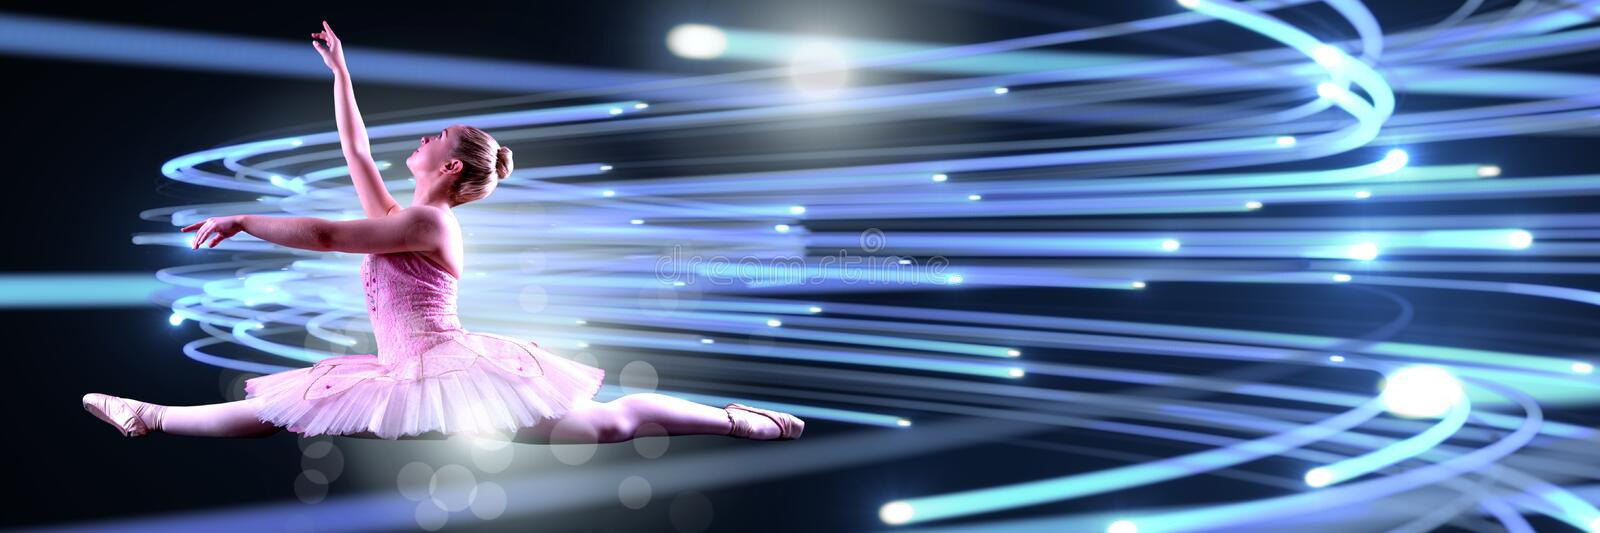 Ballet dancer dancing with digital technology interface and light glowing royalty free illustration